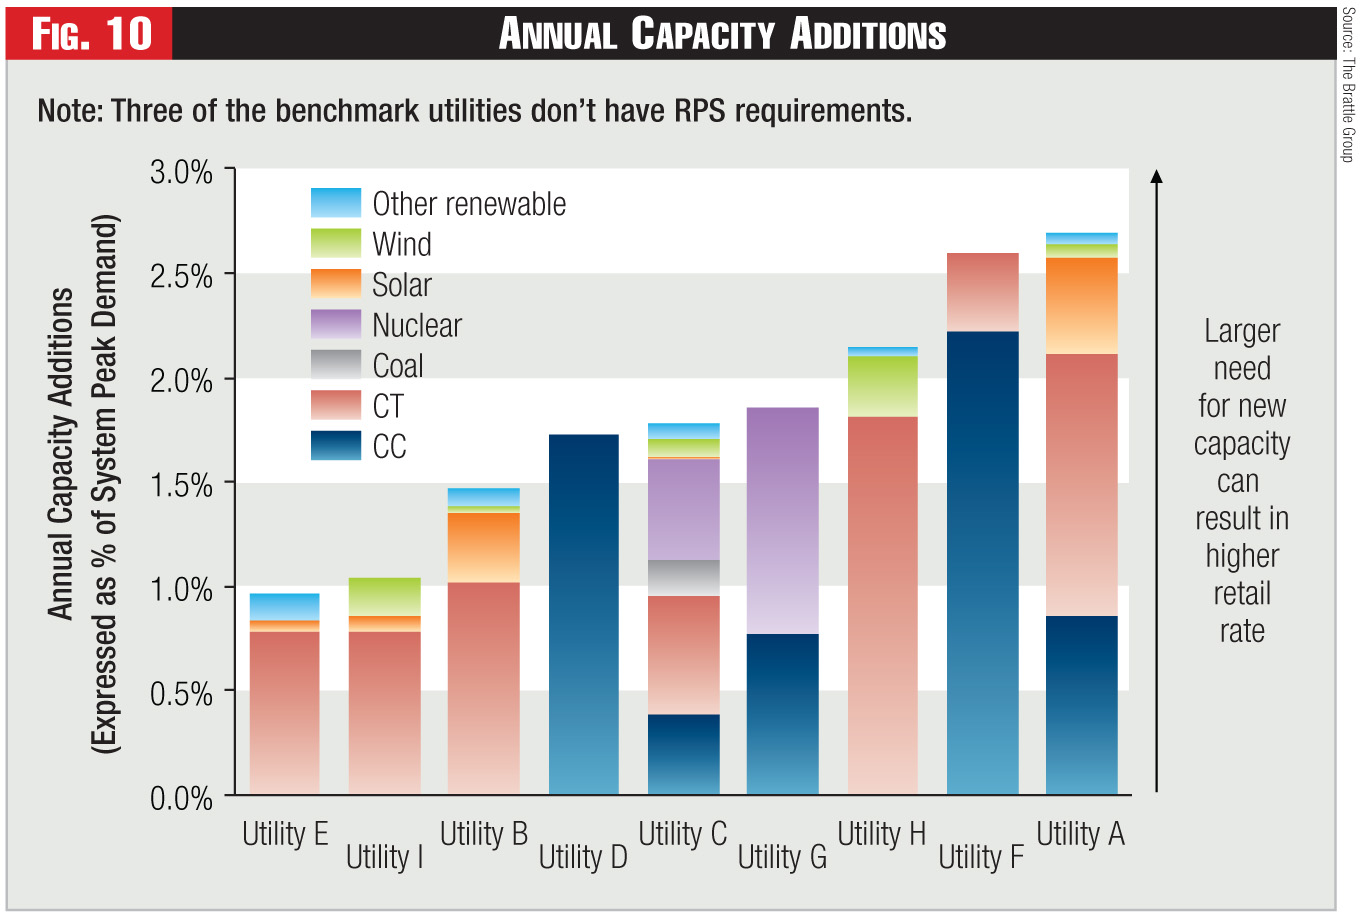 Figure 10 - Annual Capacity Additions